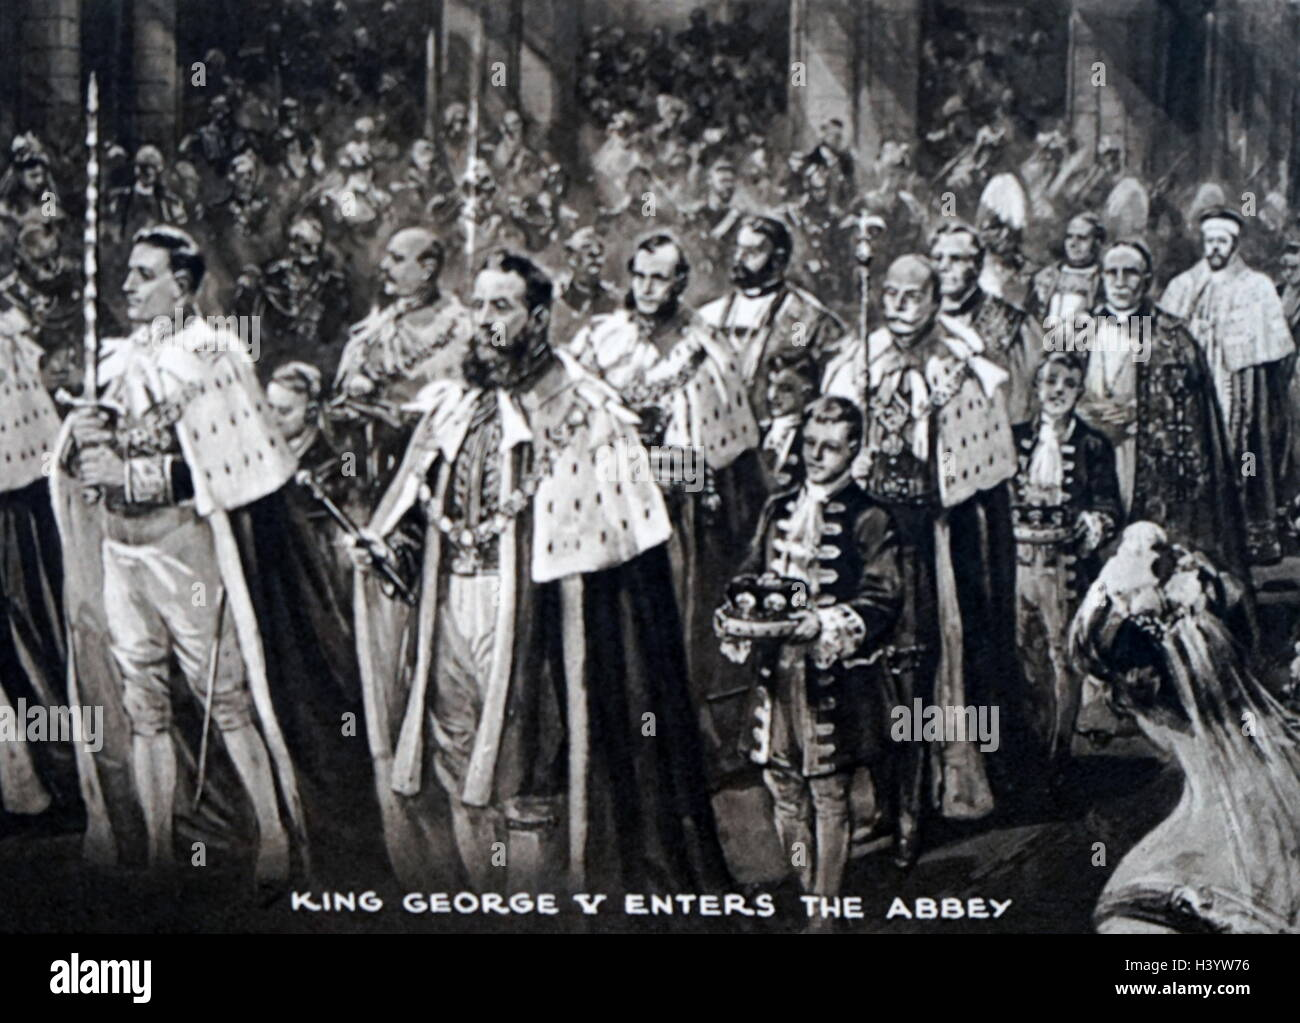 Painting of King George V (1865-1936) during the King's coronation. Dated 20th Century - Stock Image